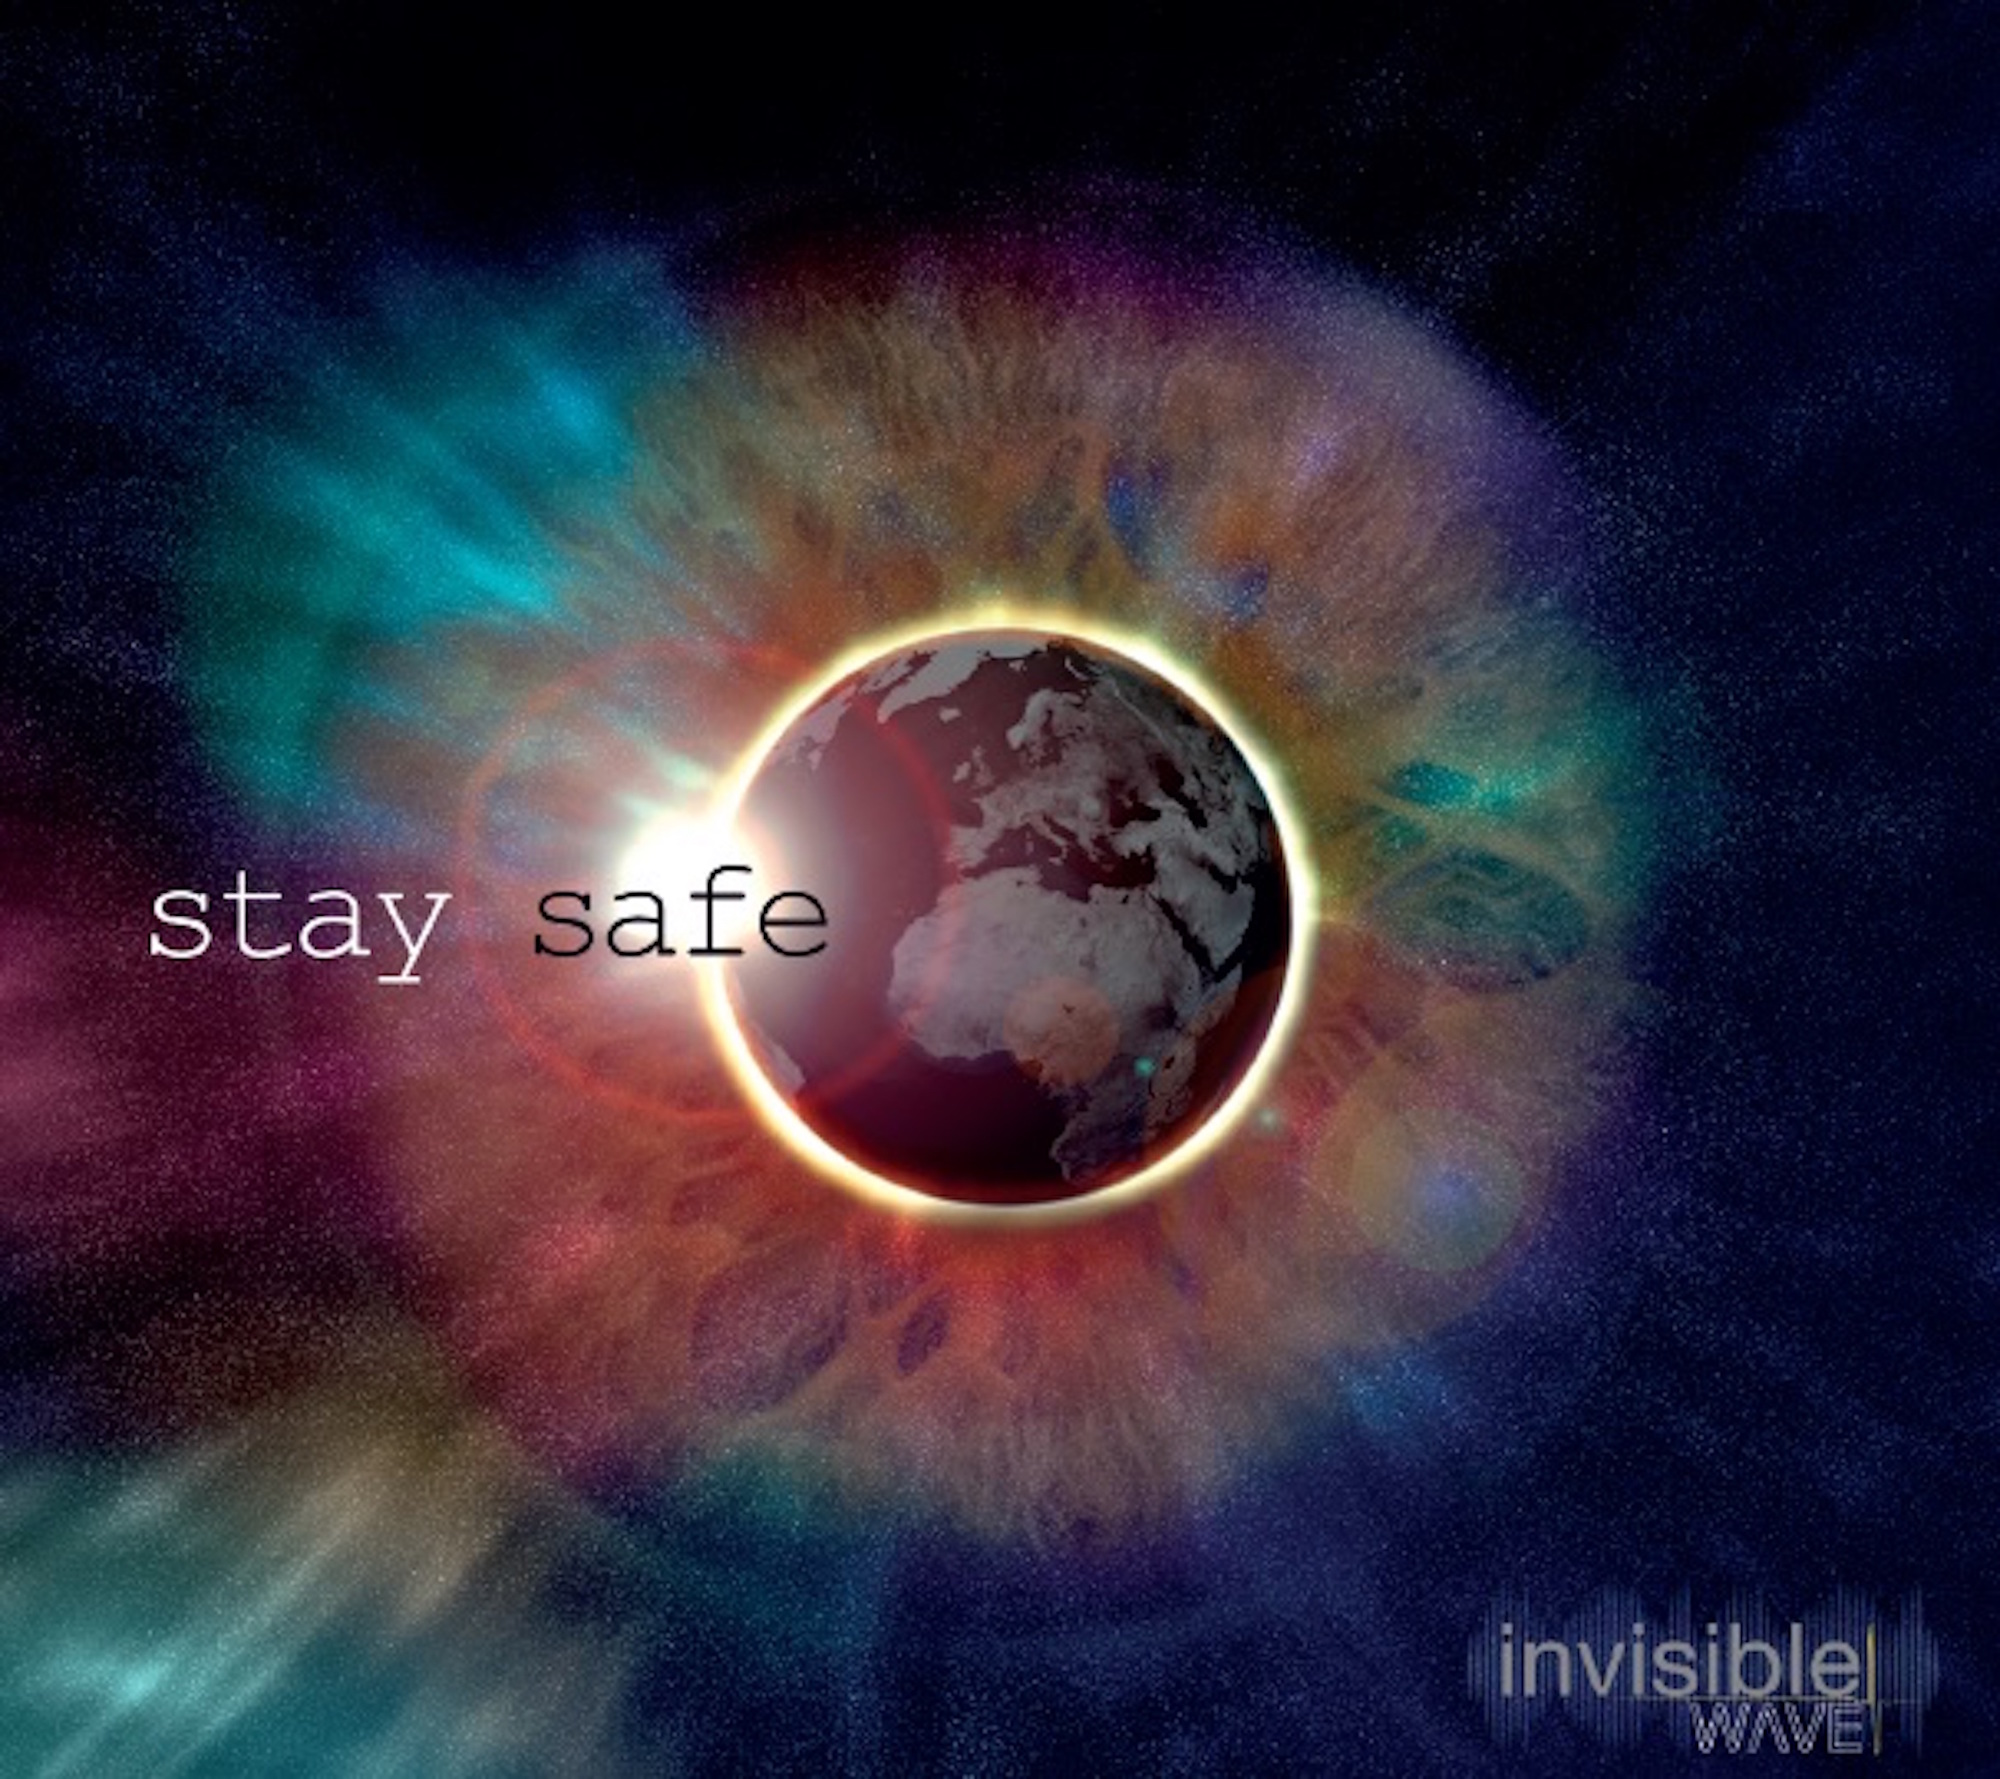 stay-safe-invisible-wave